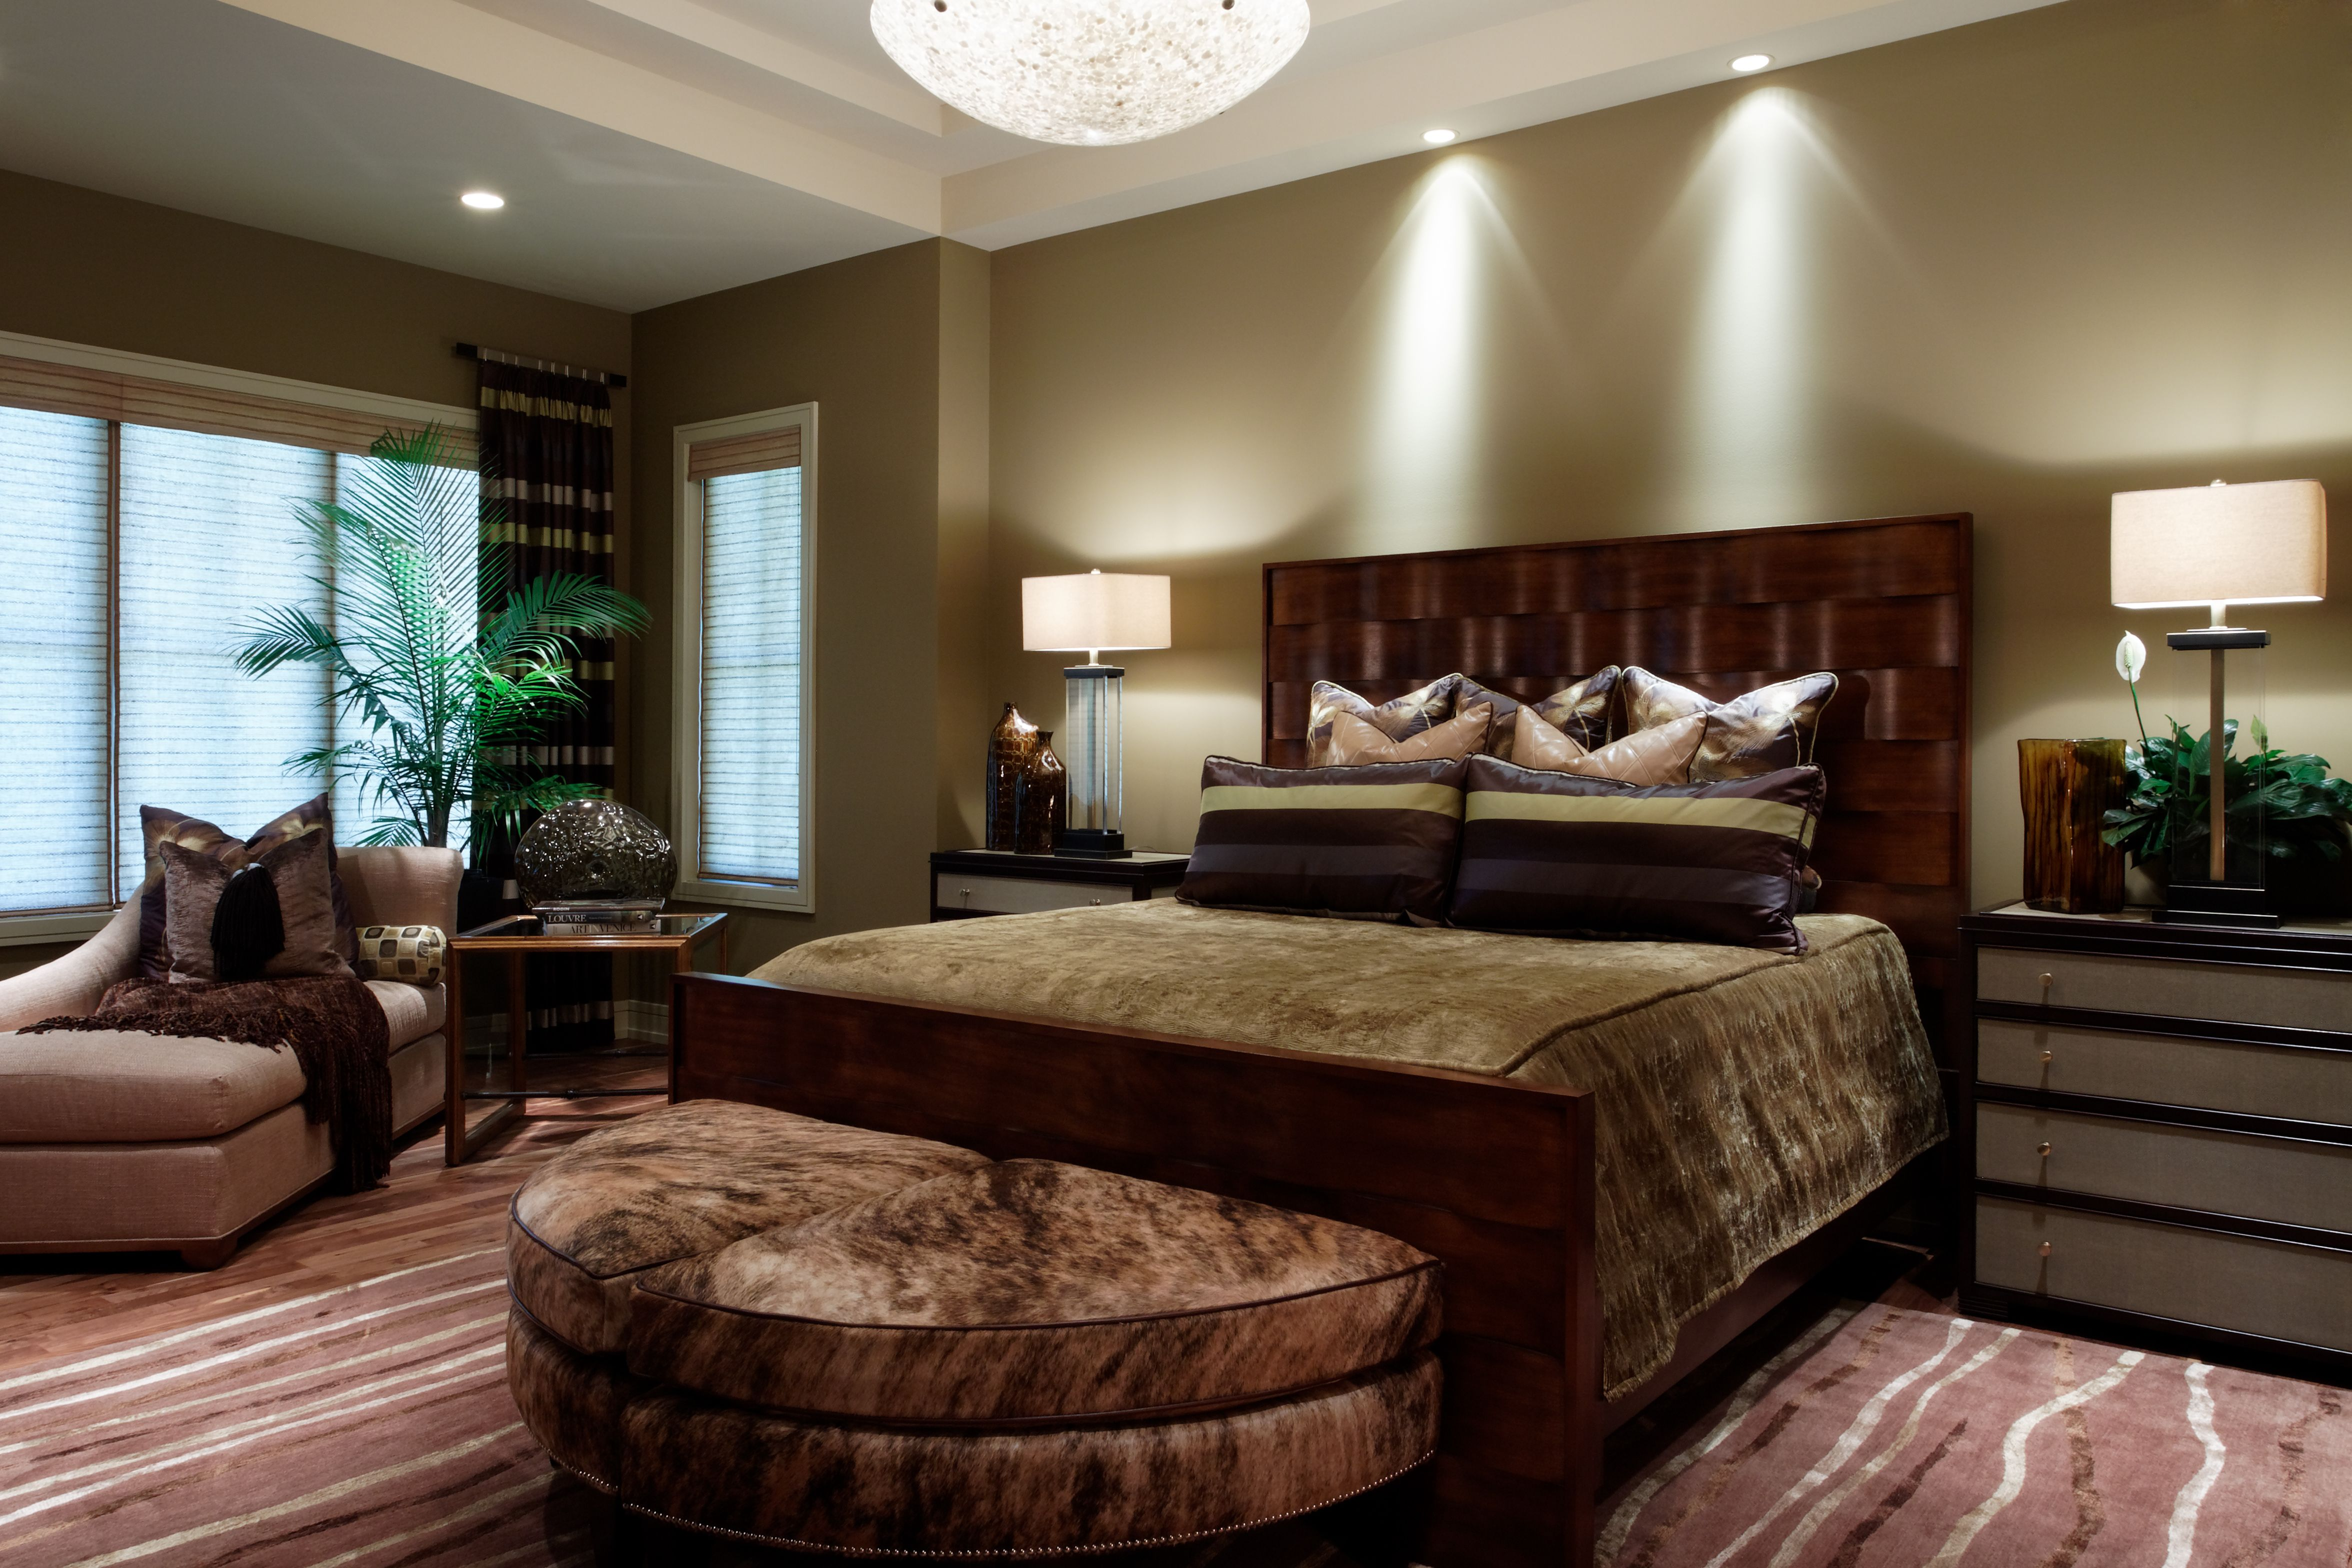 Bedroom Design in 2020 Contemporary bedroom furniture